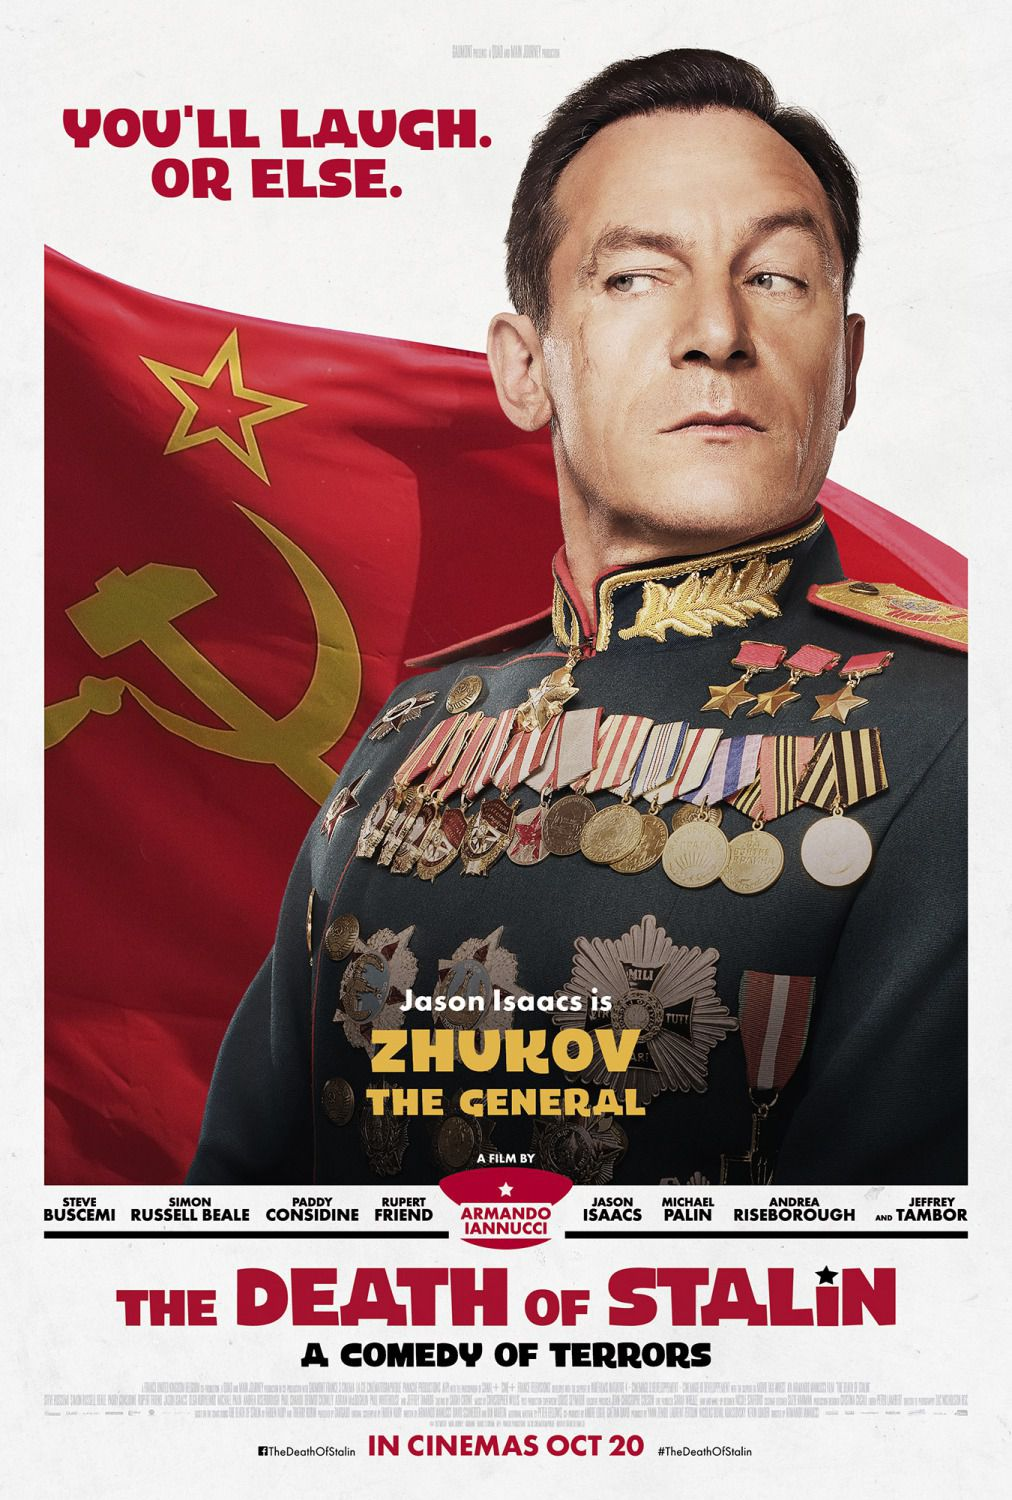 Jason Isaacs is Zhukov the General